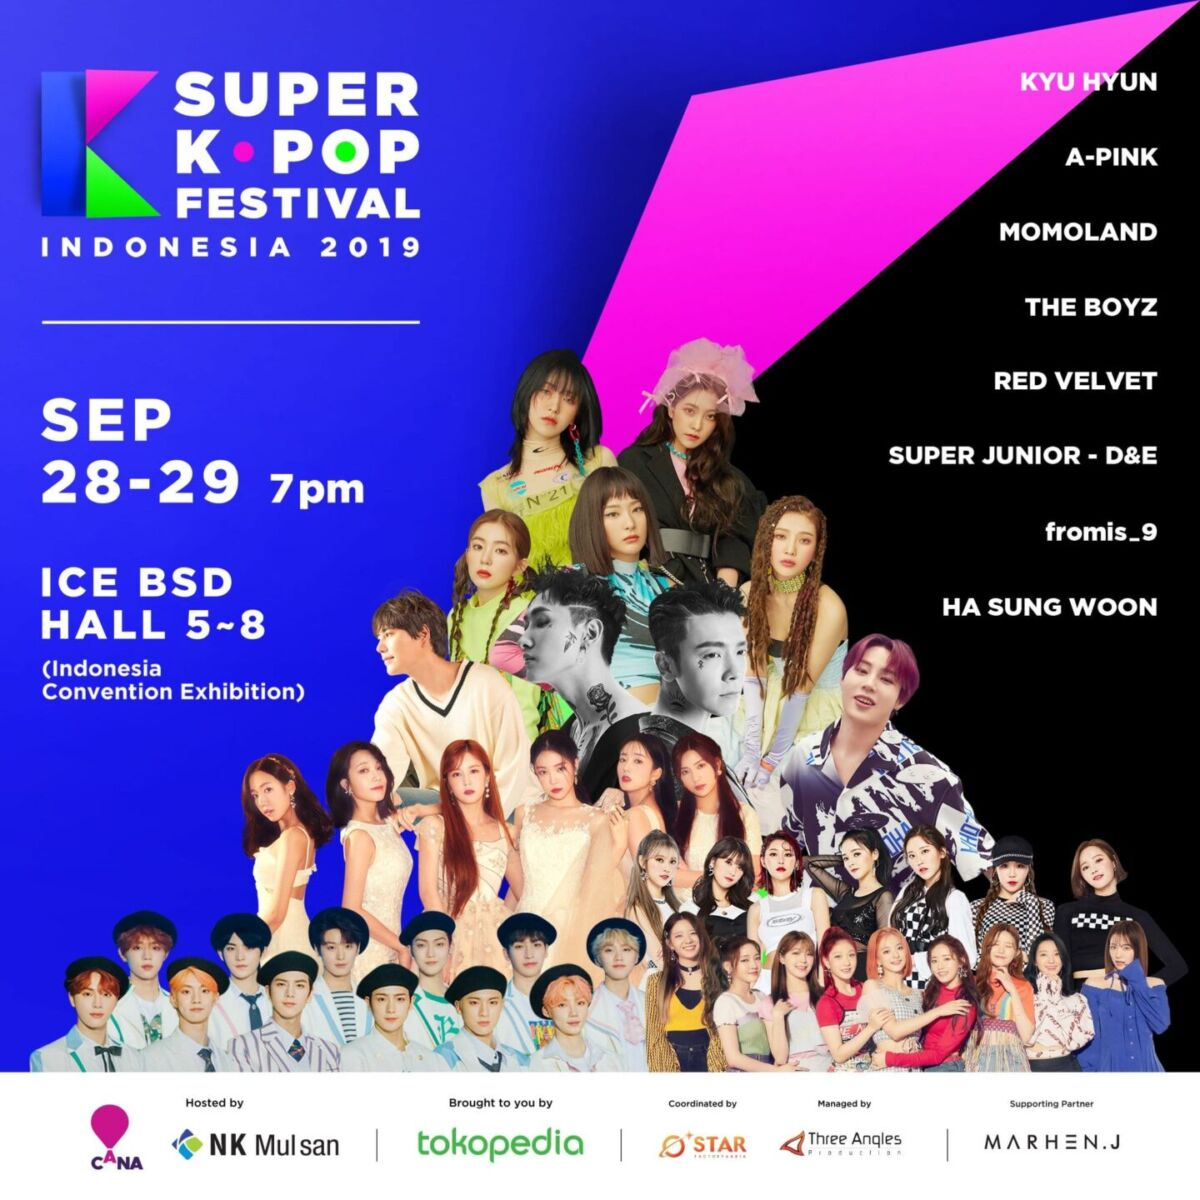 UPCOMING EVENT] Super K-Pop Festival 2019 in Indonesia – The